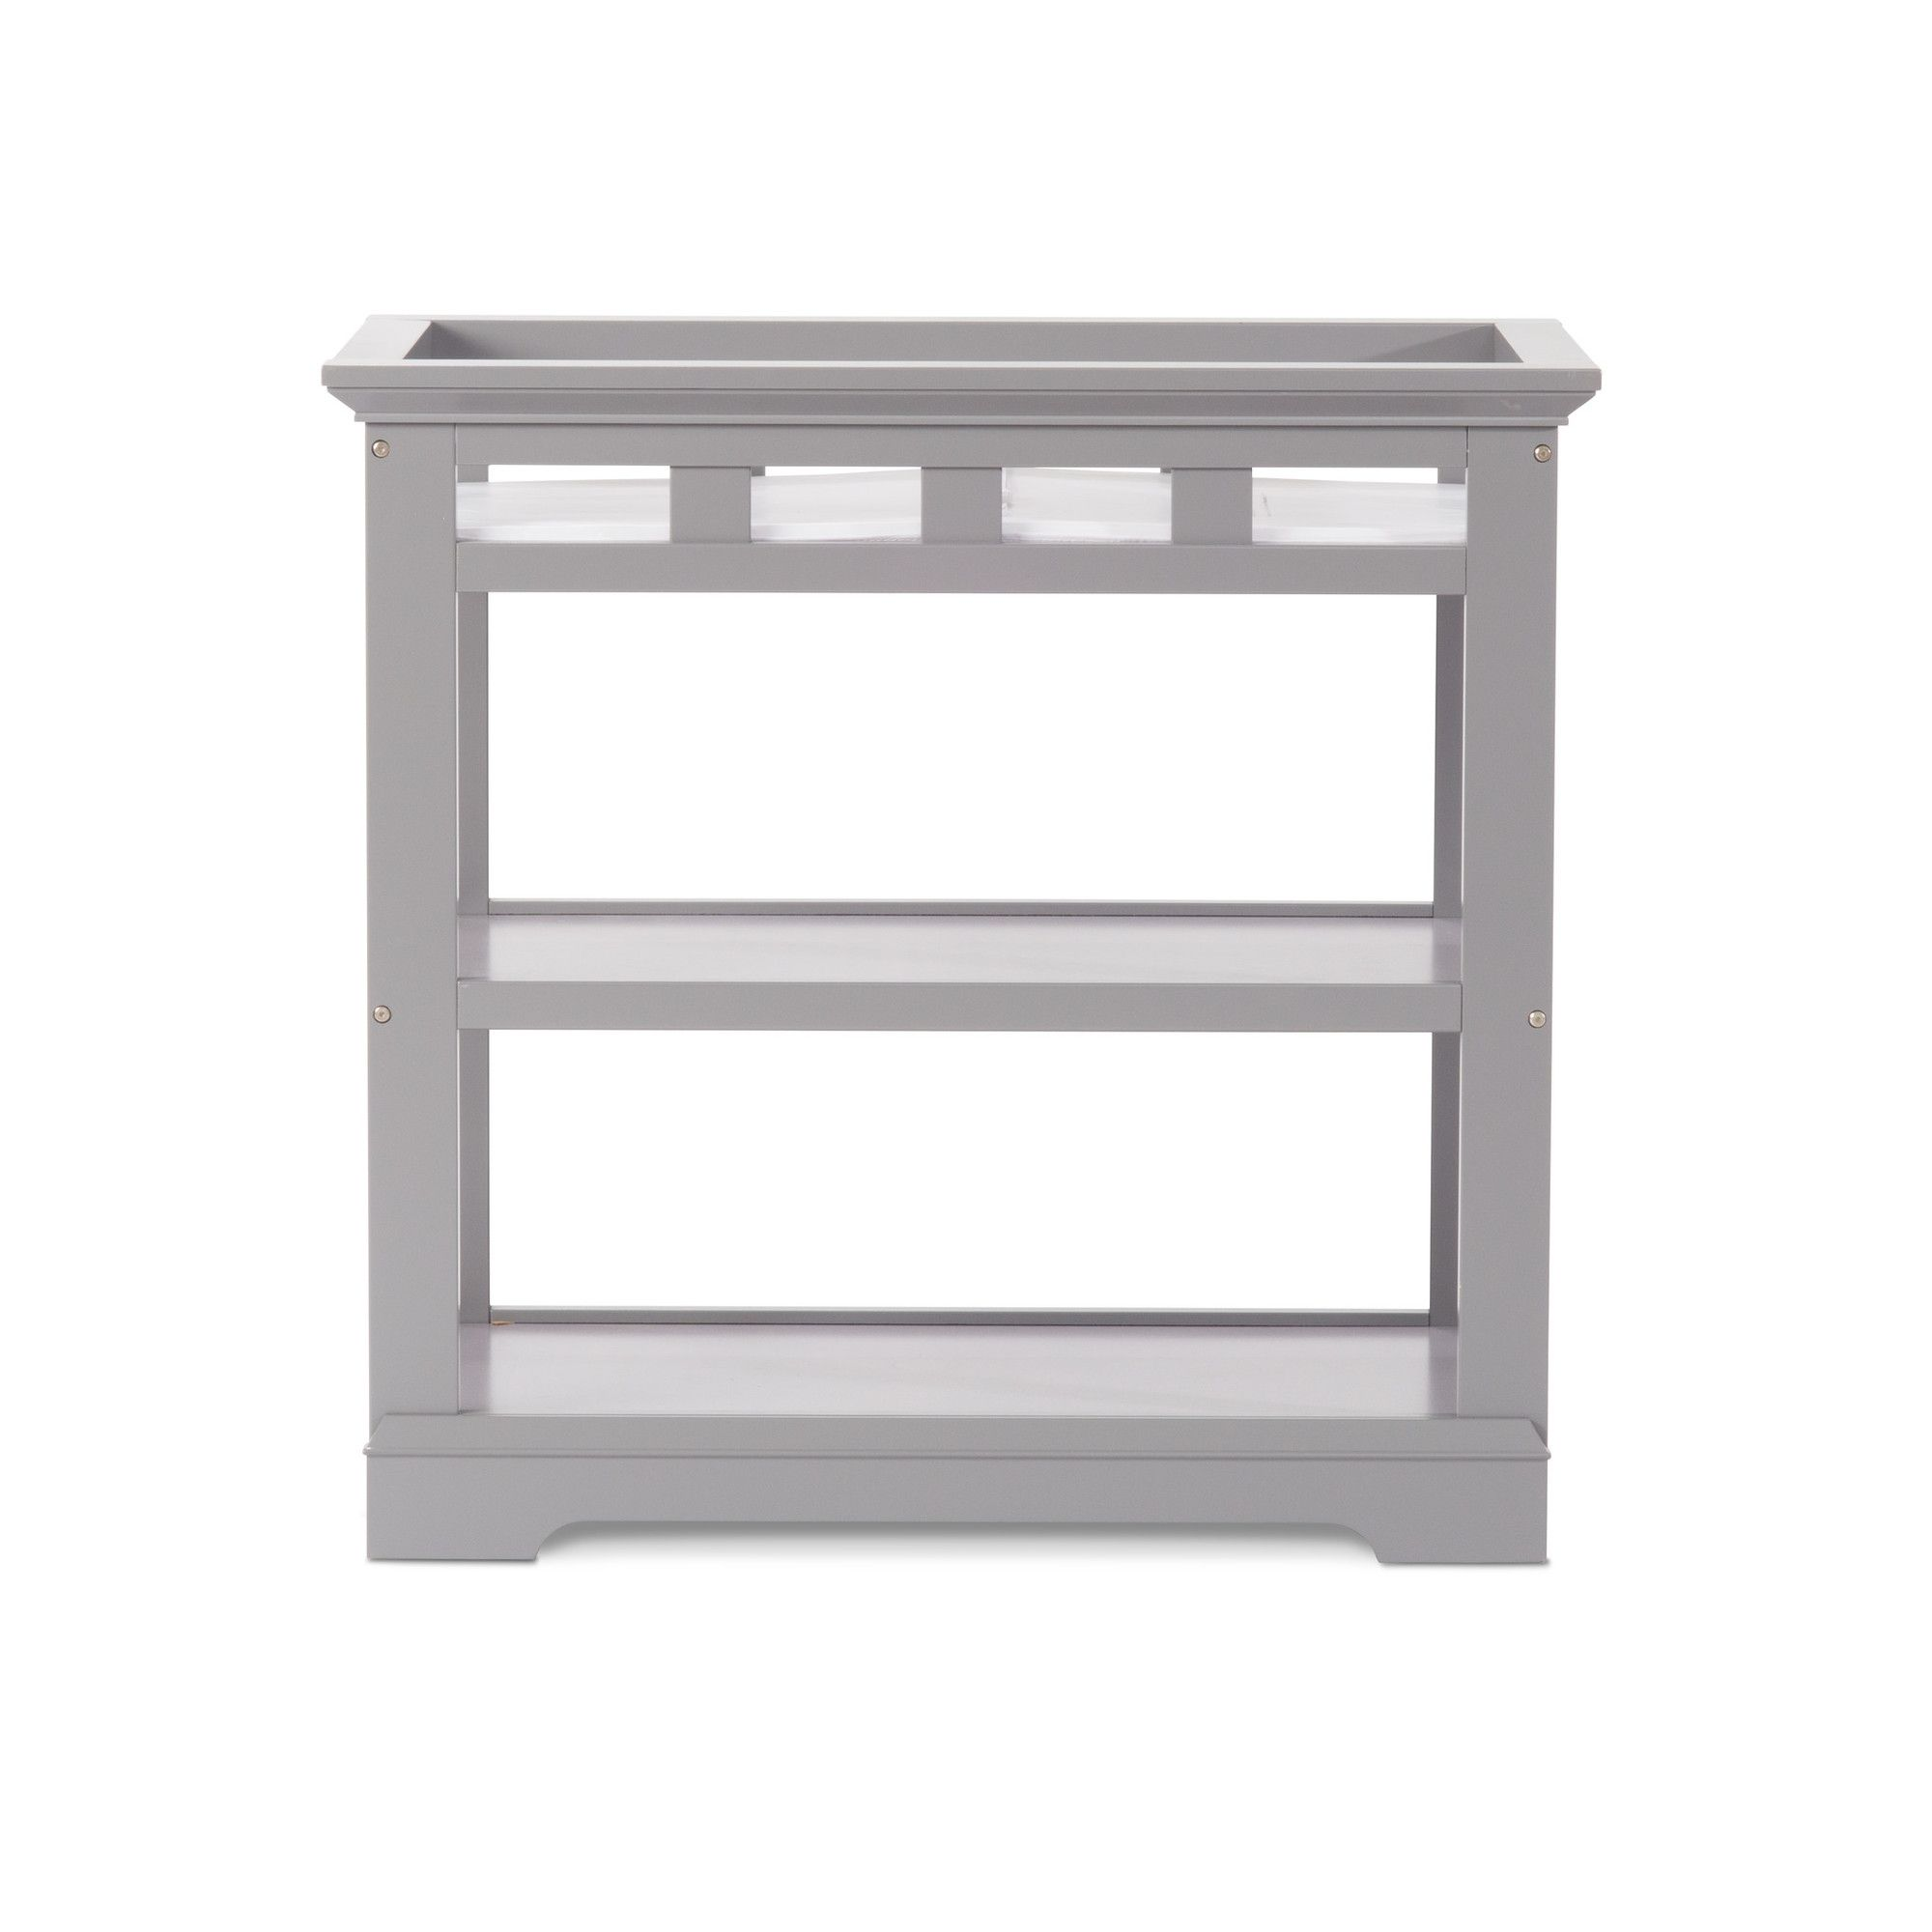 Kayden dressing changing table change tables and products